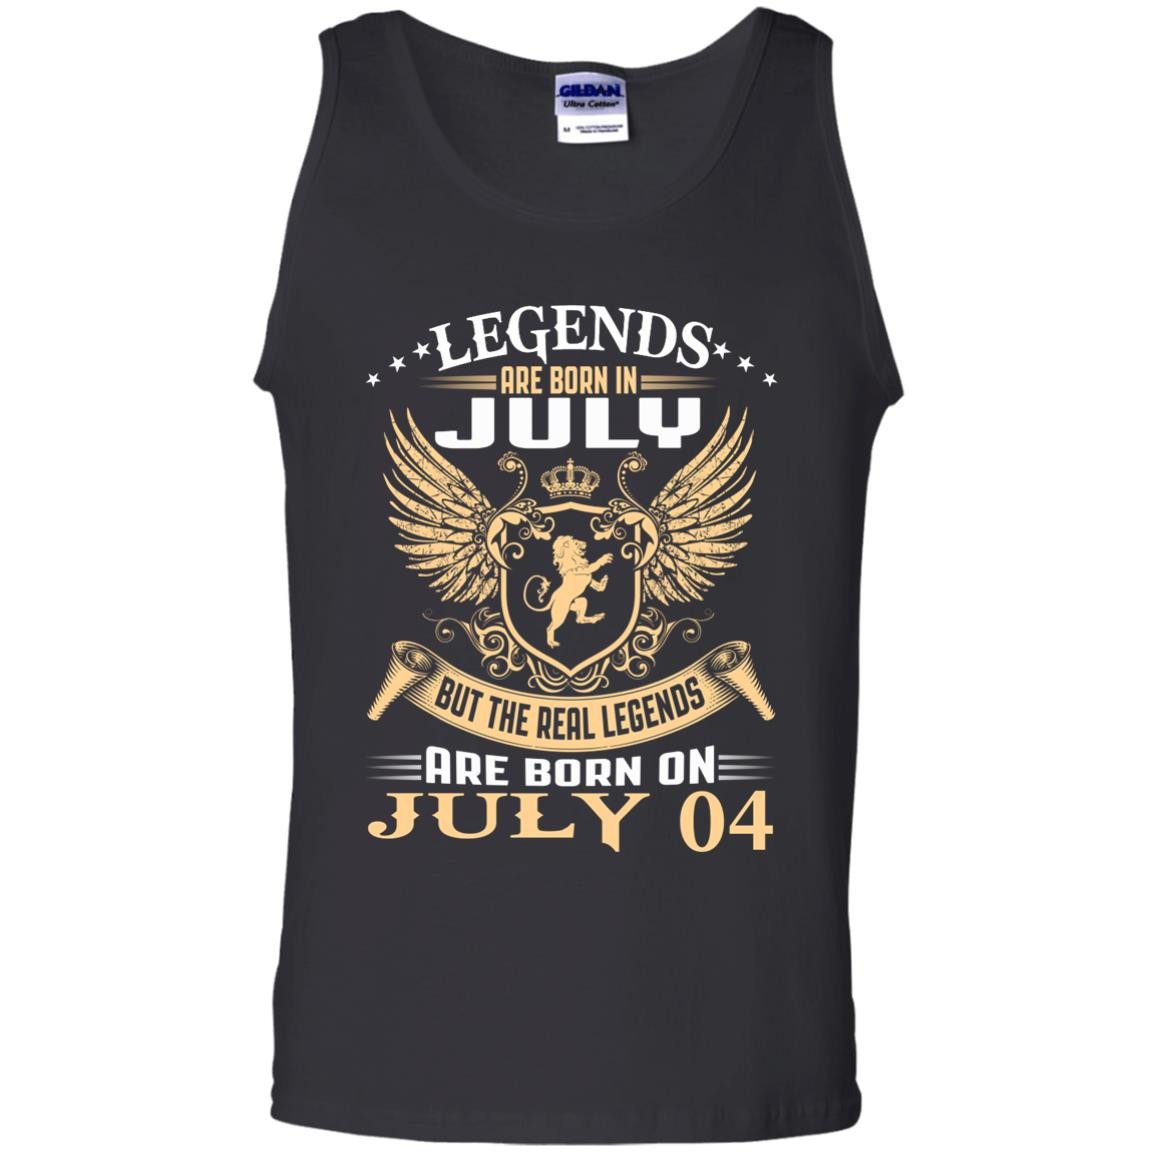 Tank top 1007 The real kings legends are born on july 04